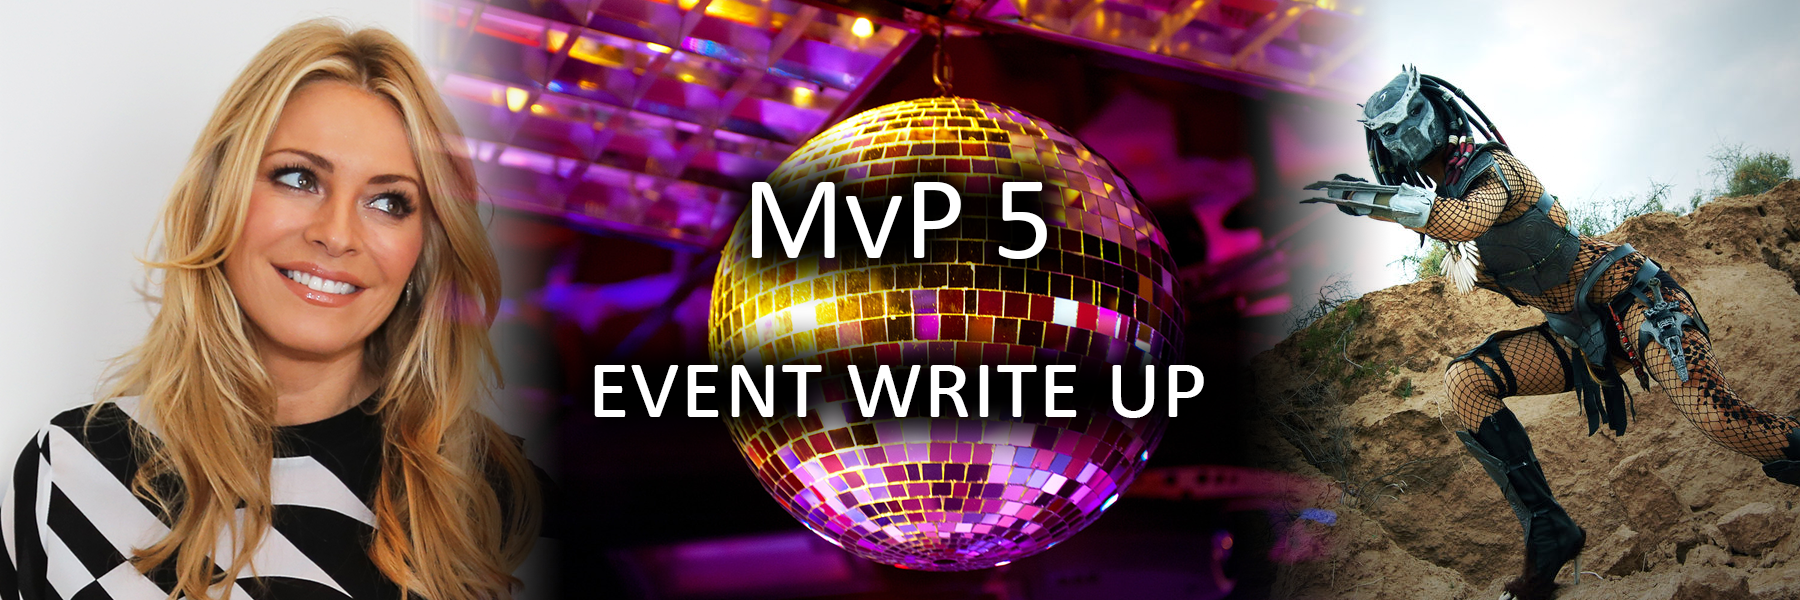 MvP5 Event Writeup